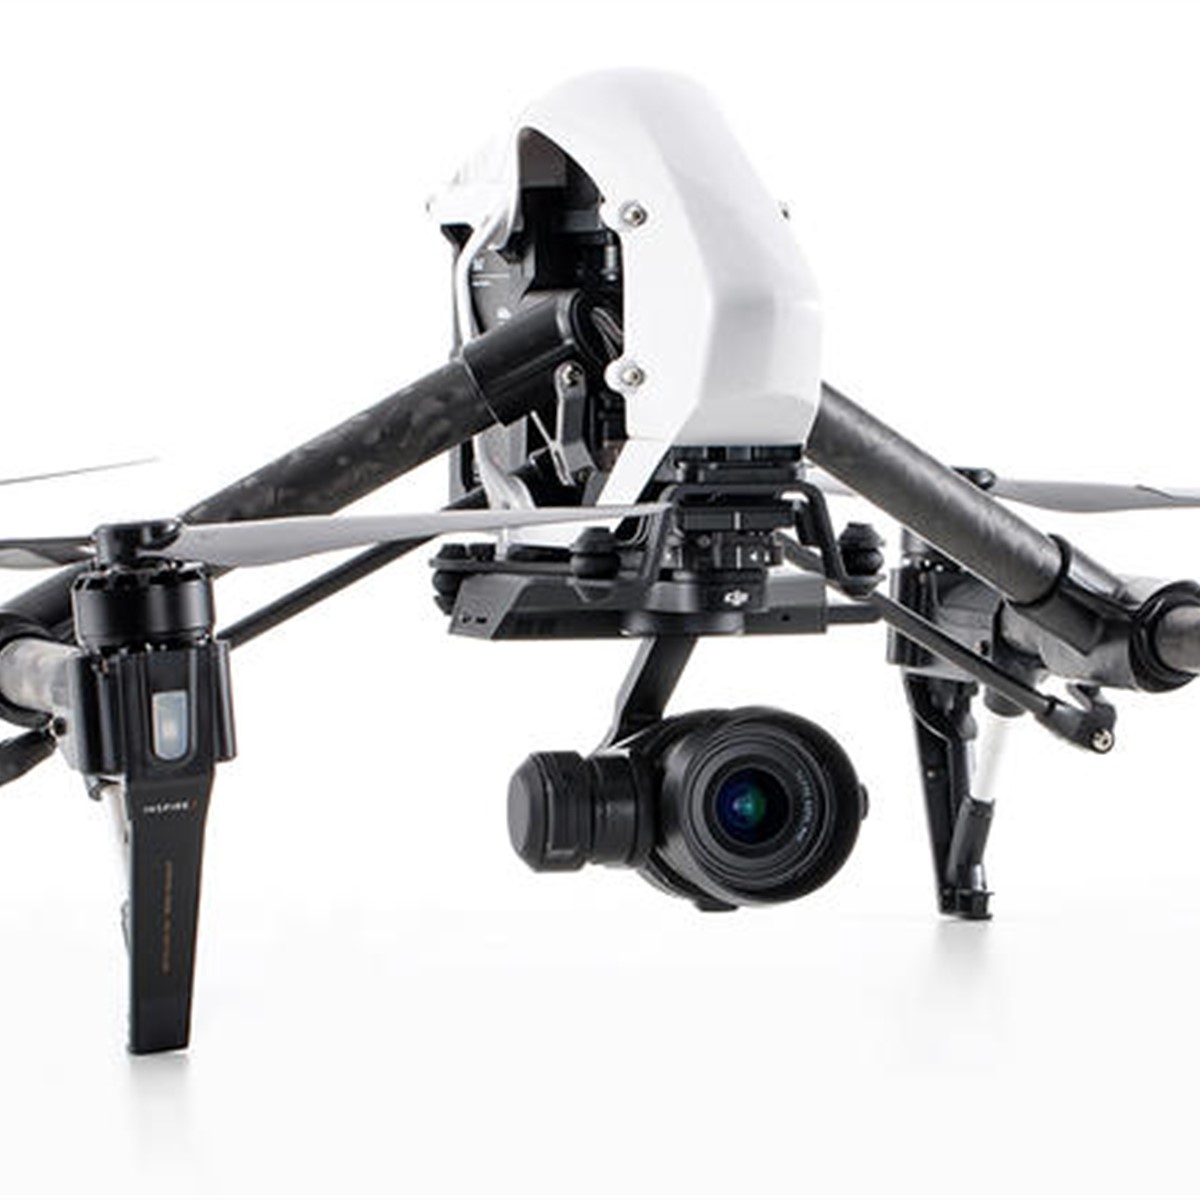 Dji Inspire 1 Raw Edition With Zenmuse X5r 4k Mft Camera Starts Pro X5 3 Axis Professional Shipping March 28 Digital Photography Review